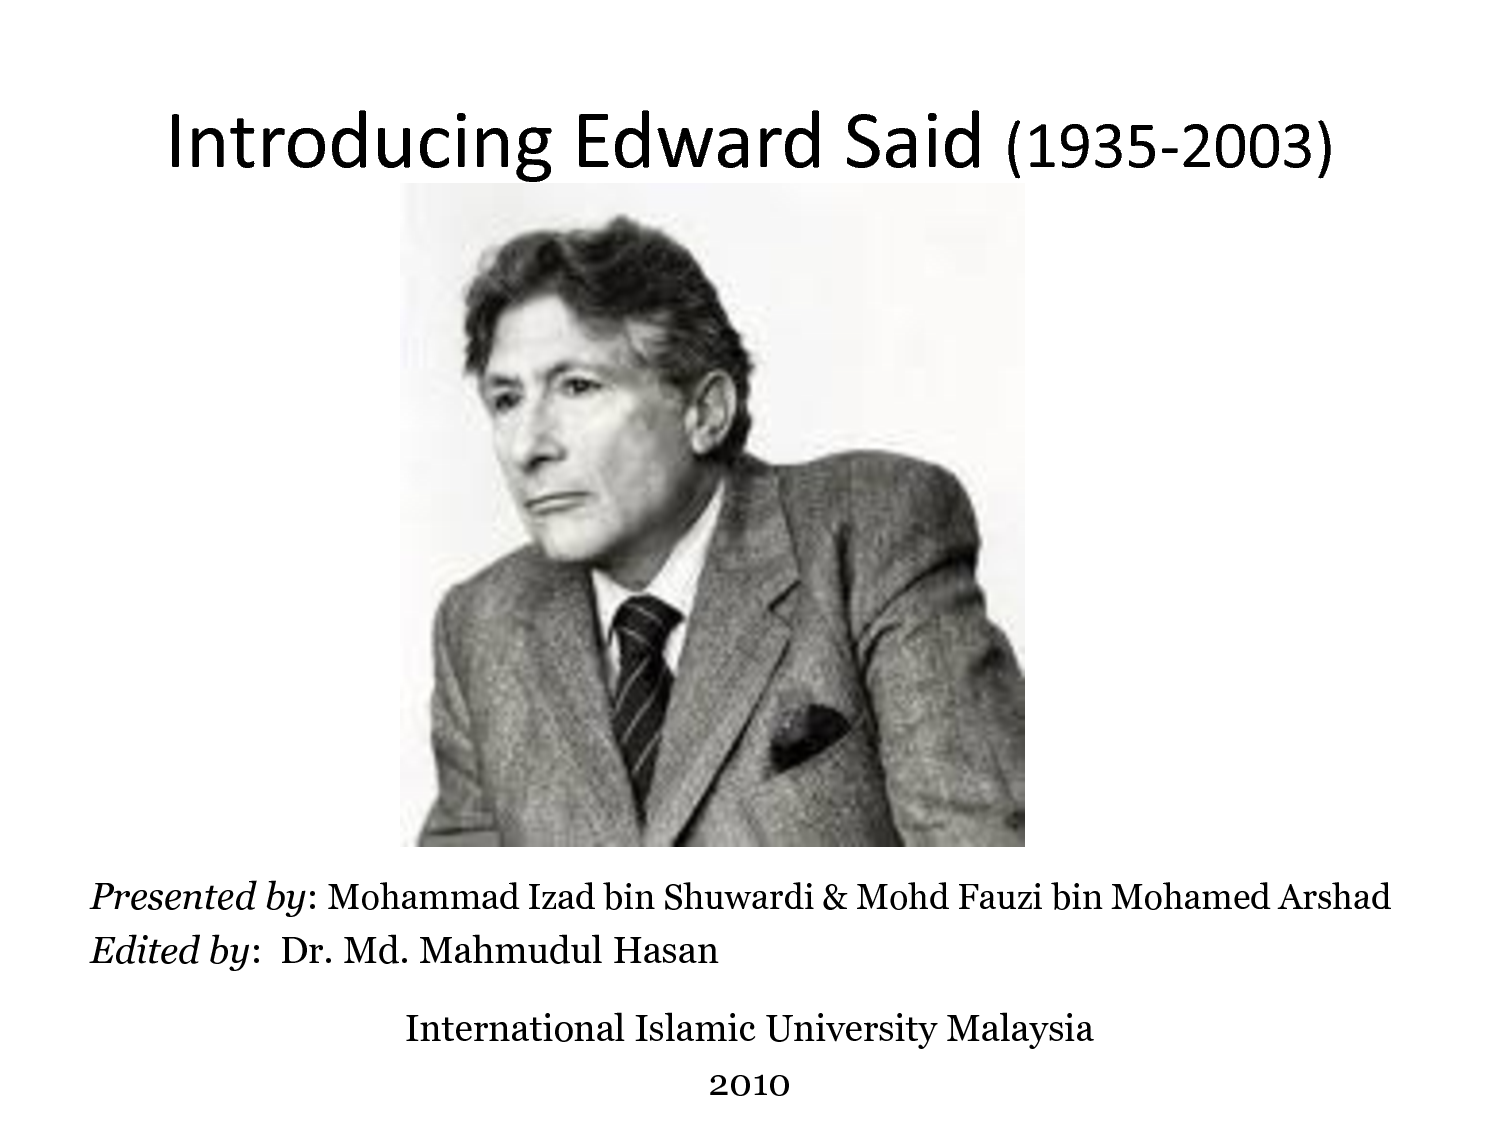 an analysis of orientalism by edward said Any summary of said's immensely subtle analysis of western attitudes and conduct towards the east risks becoming a travesty • orientalism by edward said.